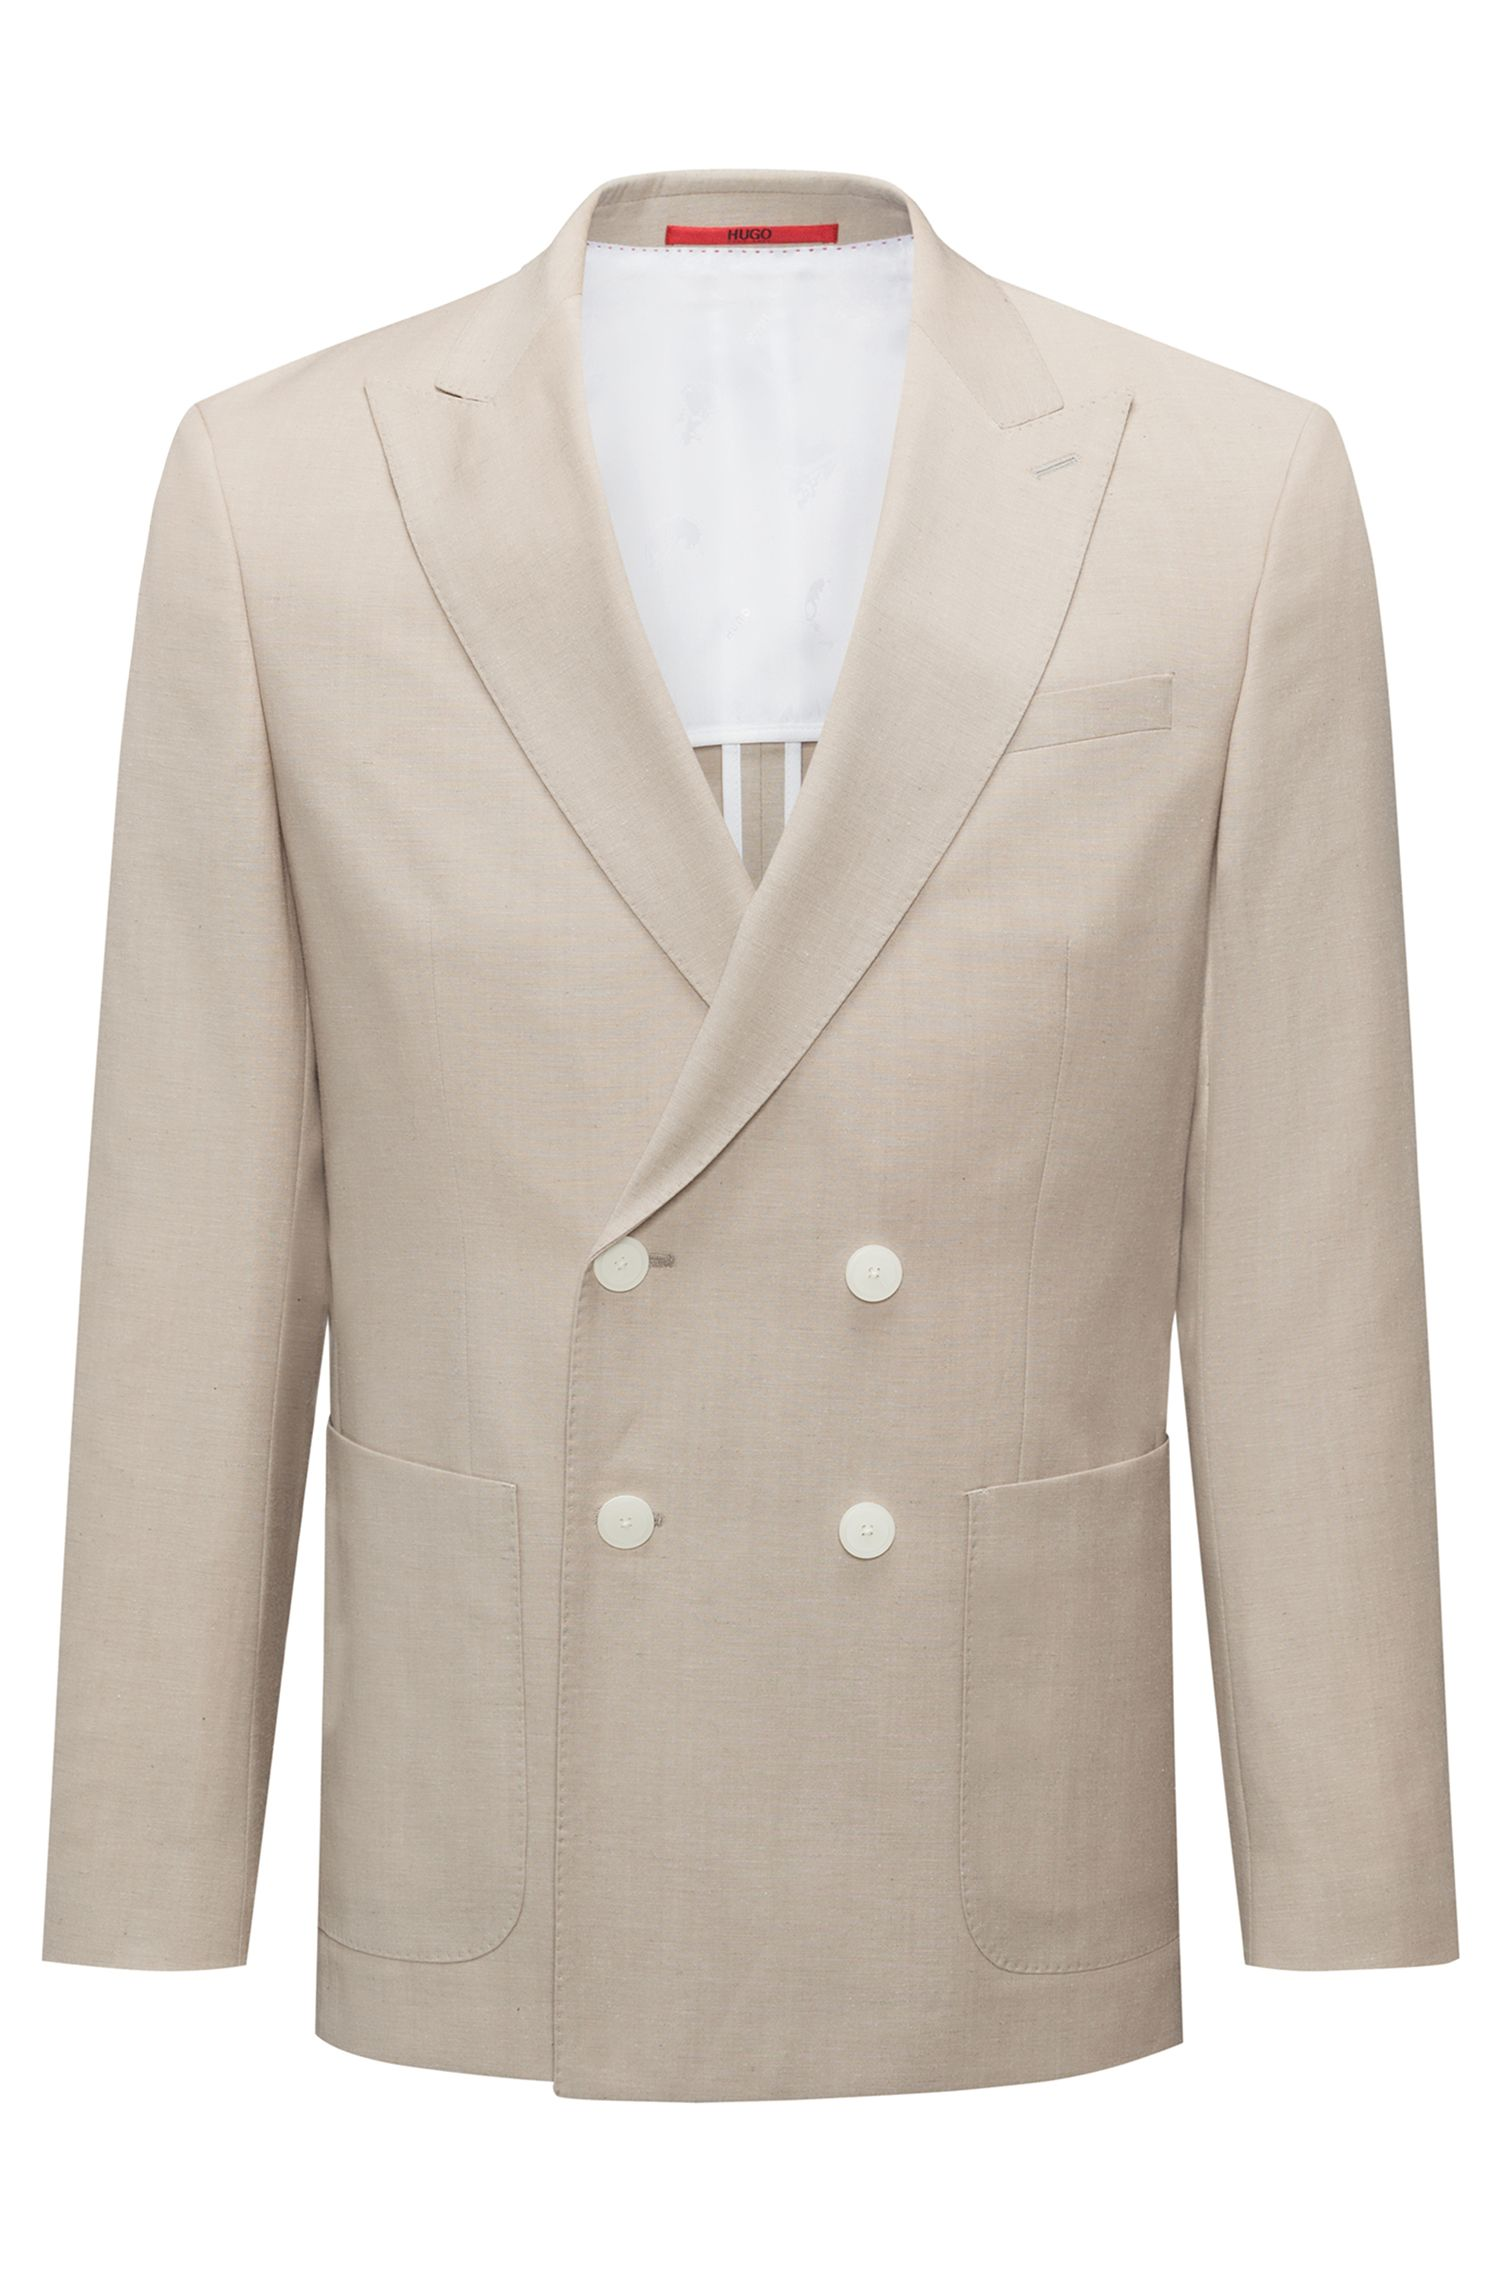 Slim-fit double-breasted jacket in a structured wool blend